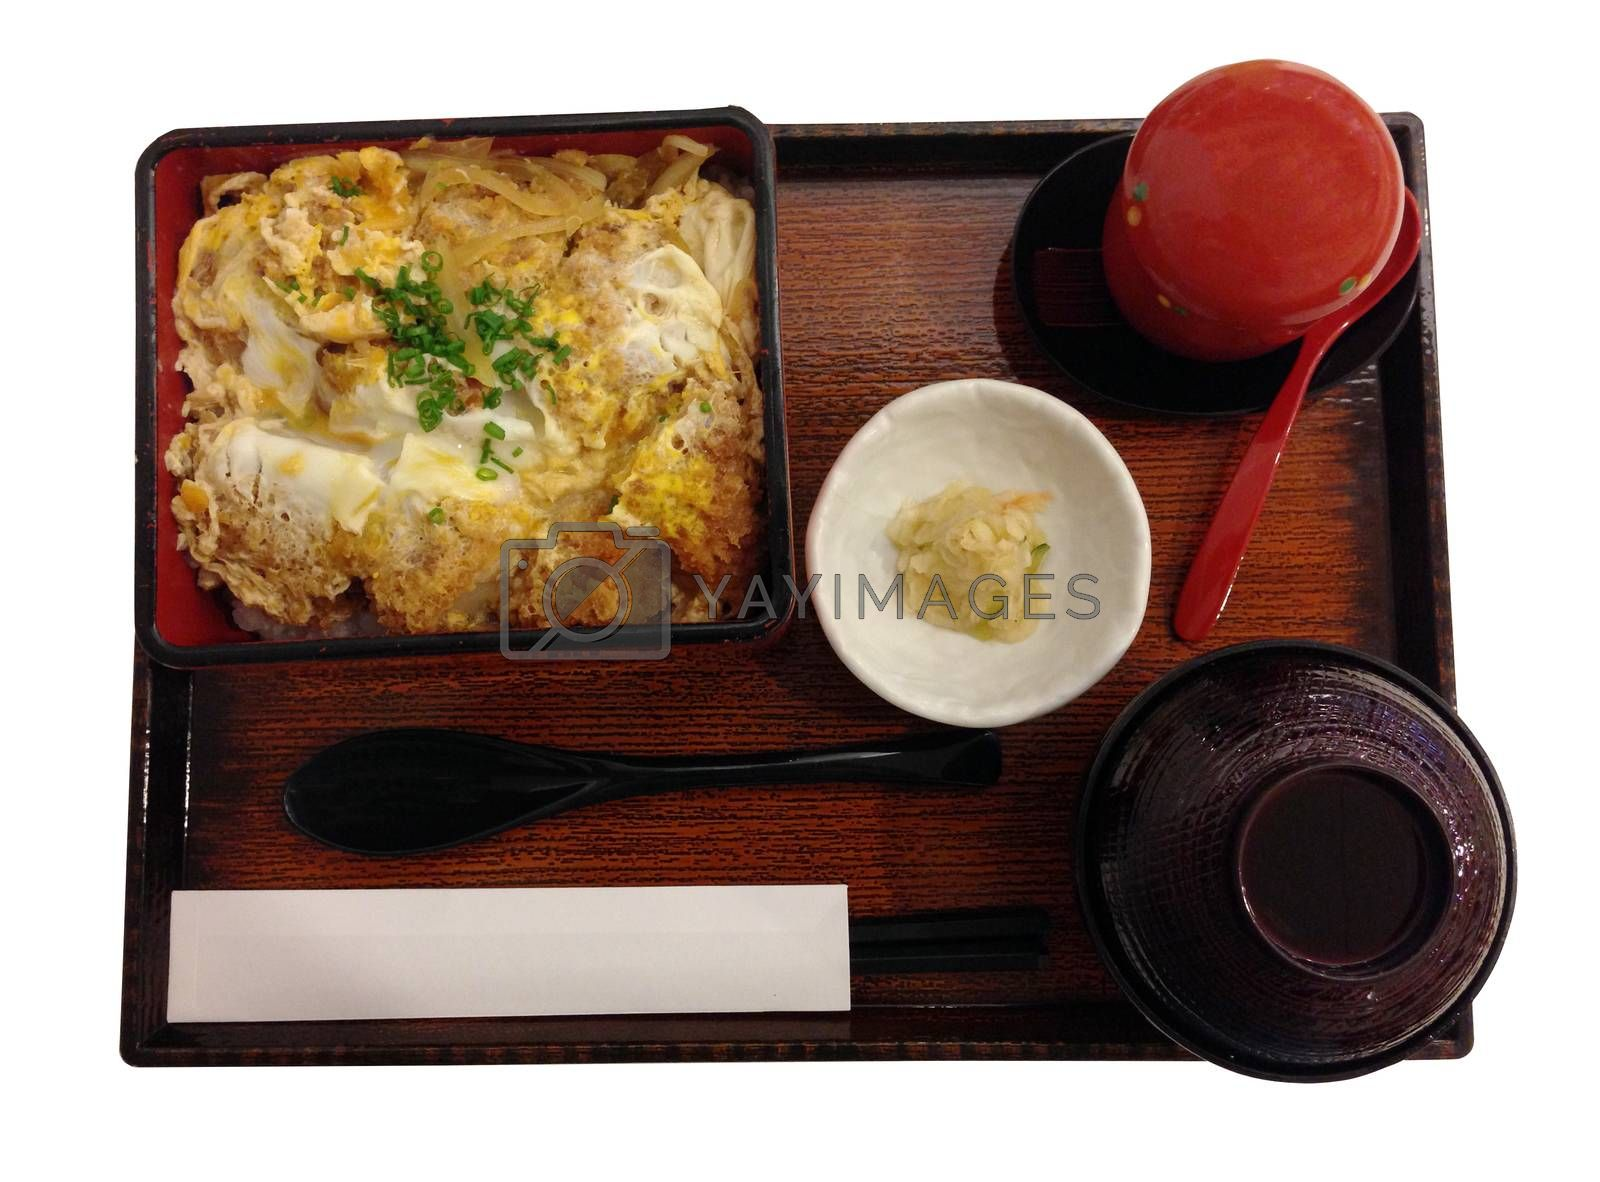 Royalty free image of bento set with fried pork and egg, japanese lunch set by pandara